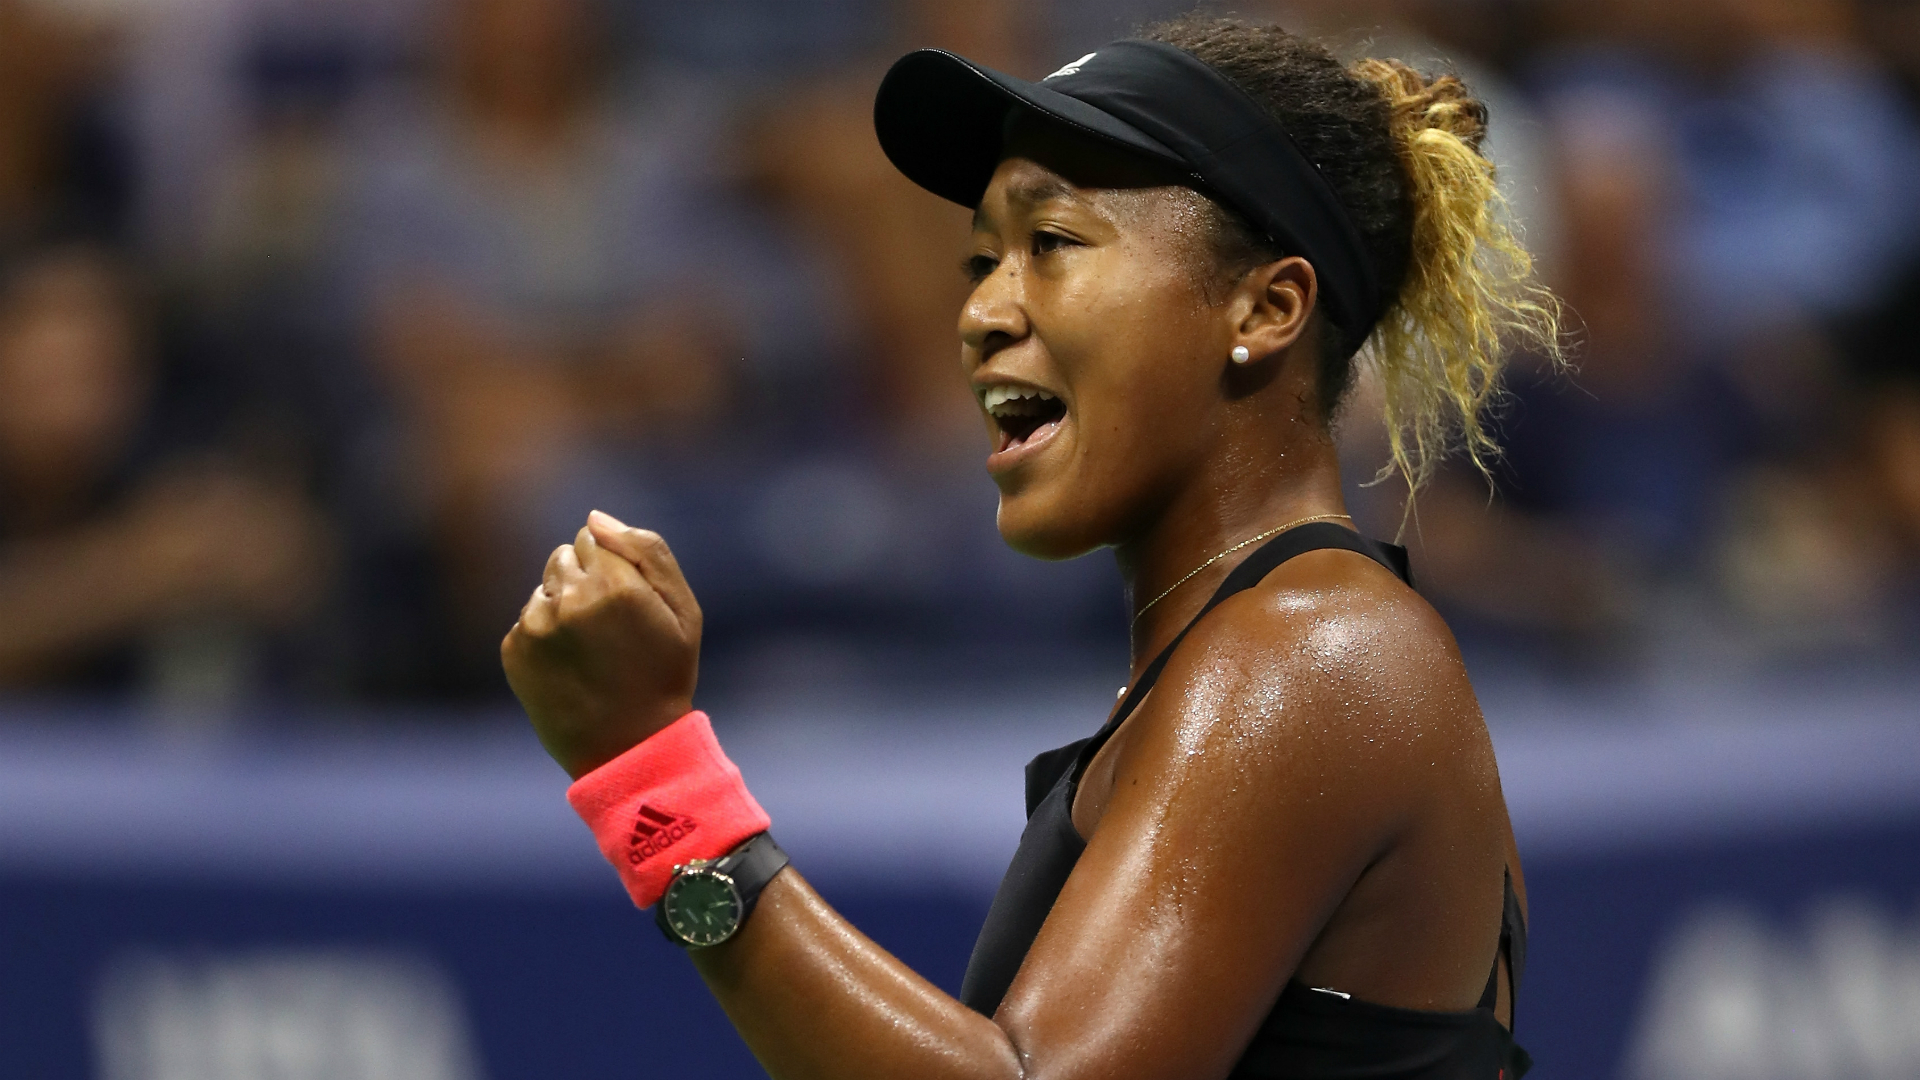 Serena Williams vs Naomi Osaka, US Open 2018 final